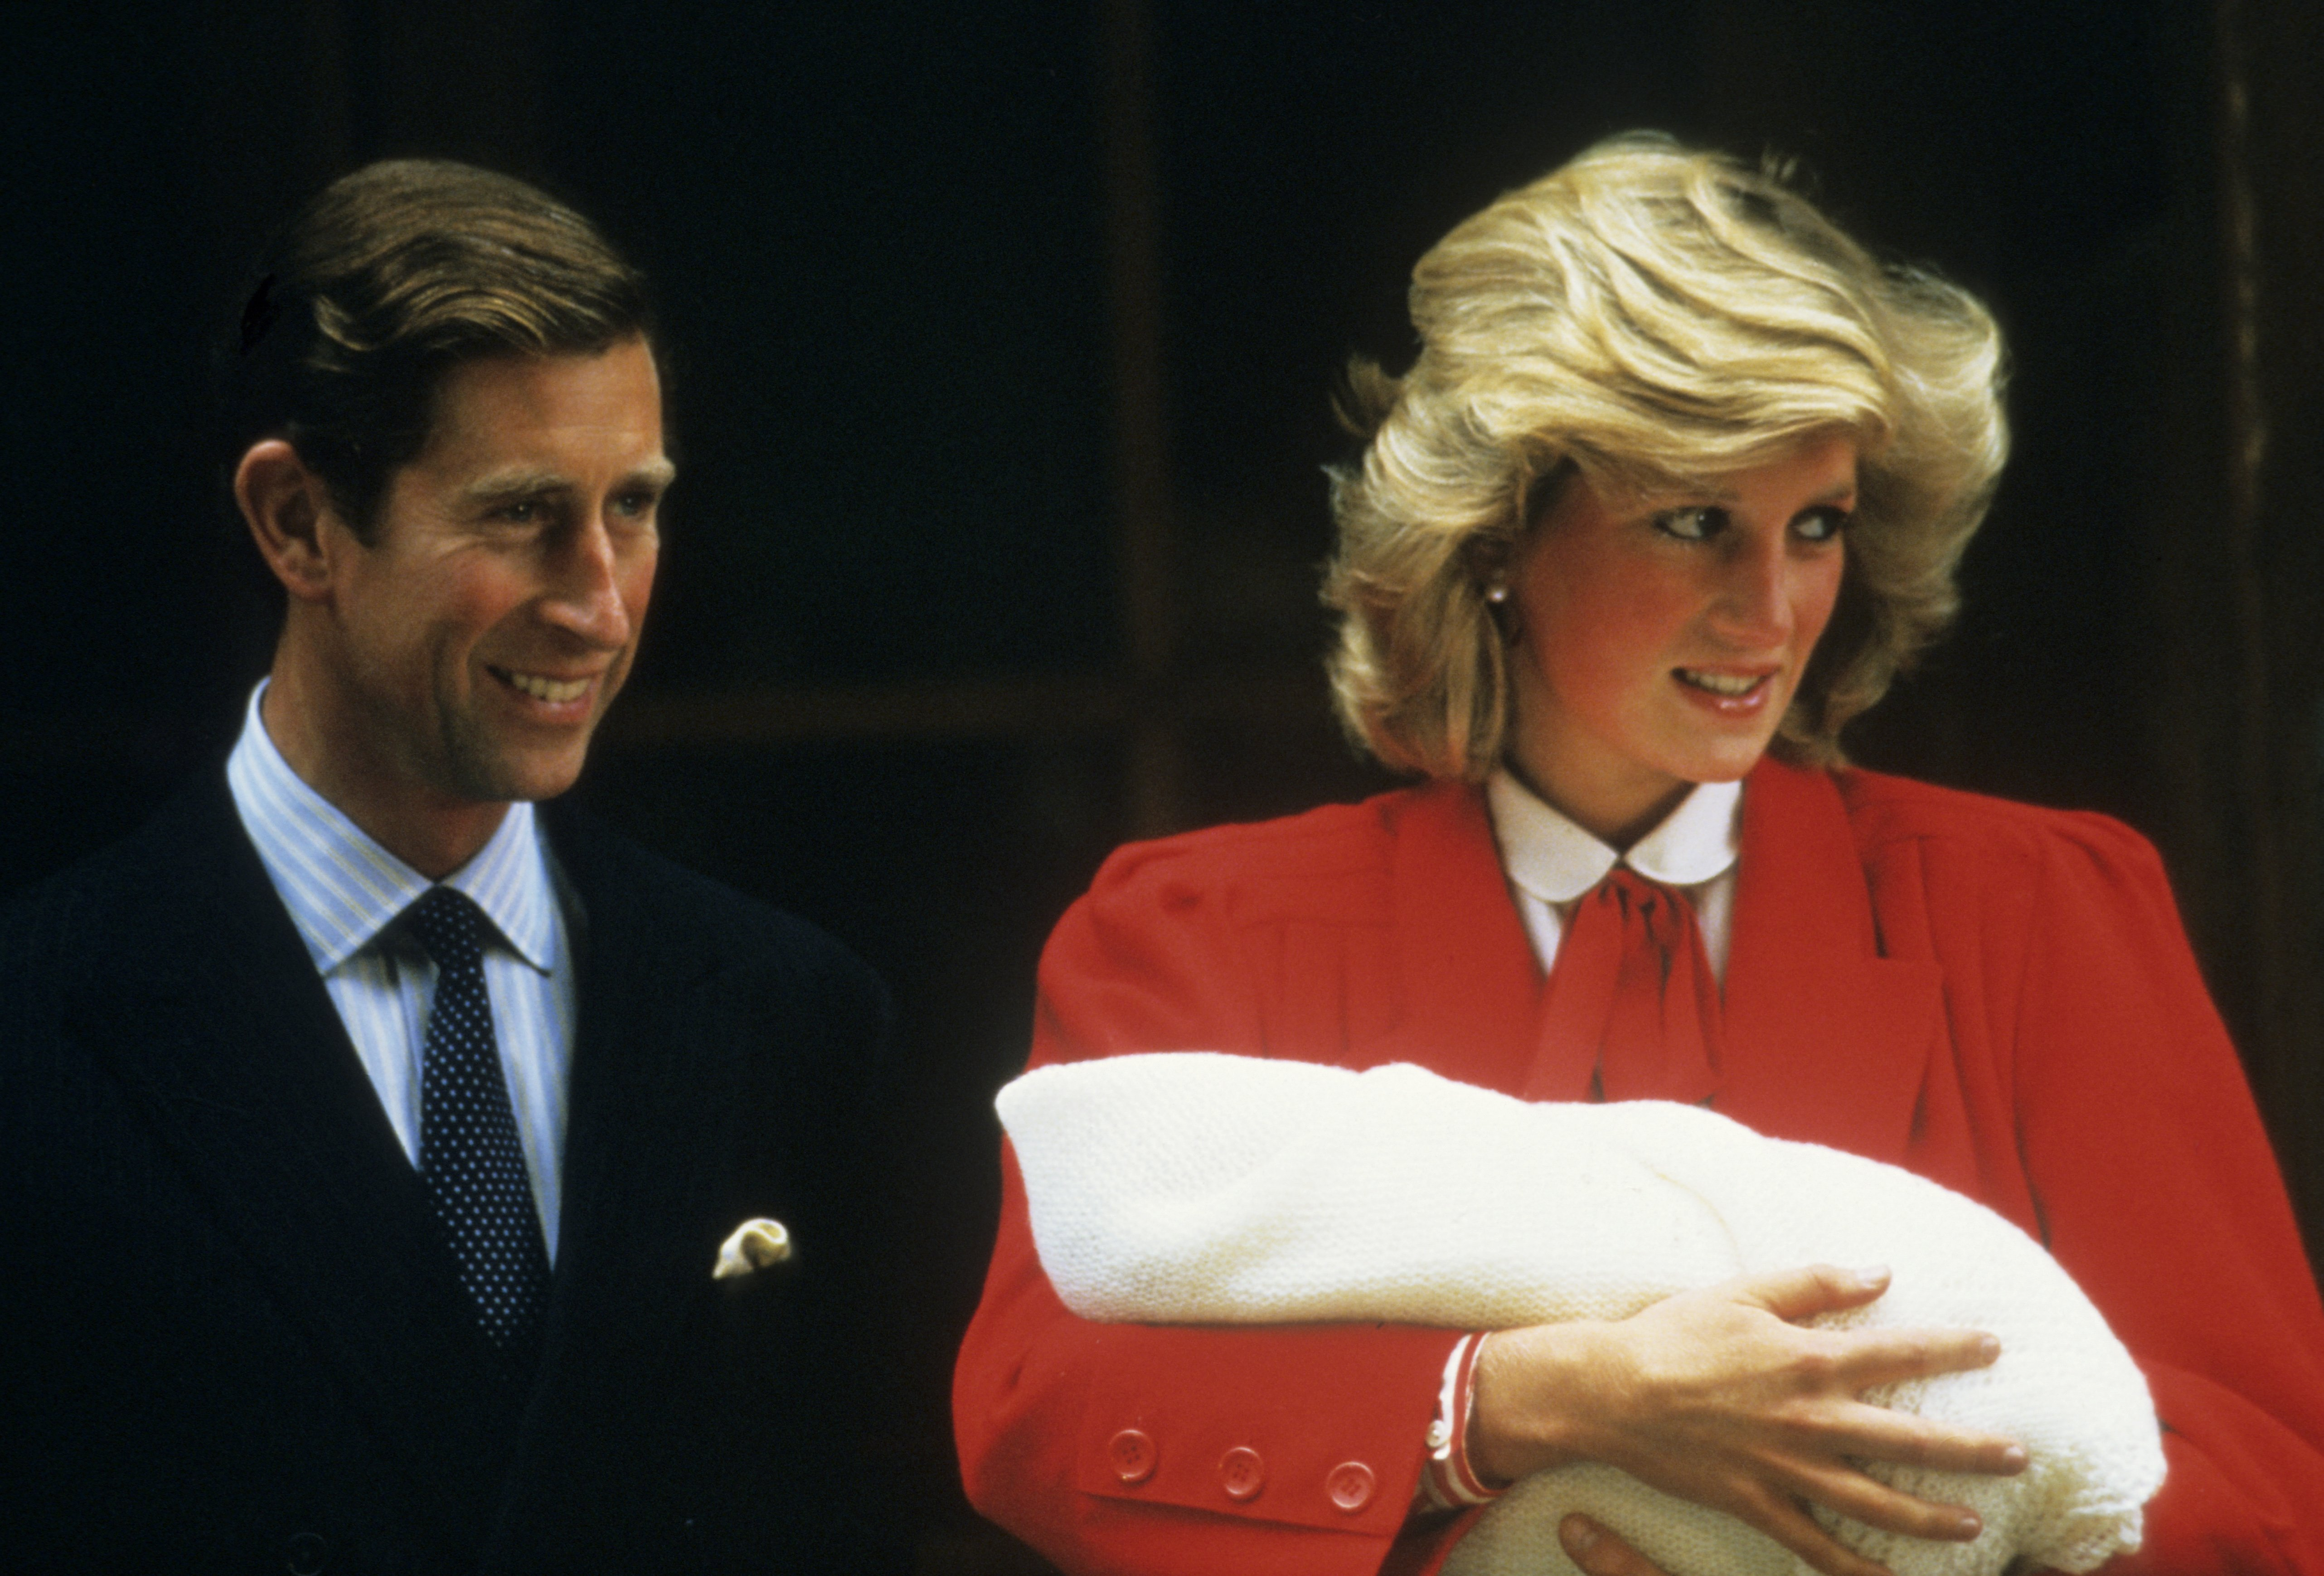 Image Credits: Getty Images | Prince Charles (left), at Princess Diana's First Hospital Delivery